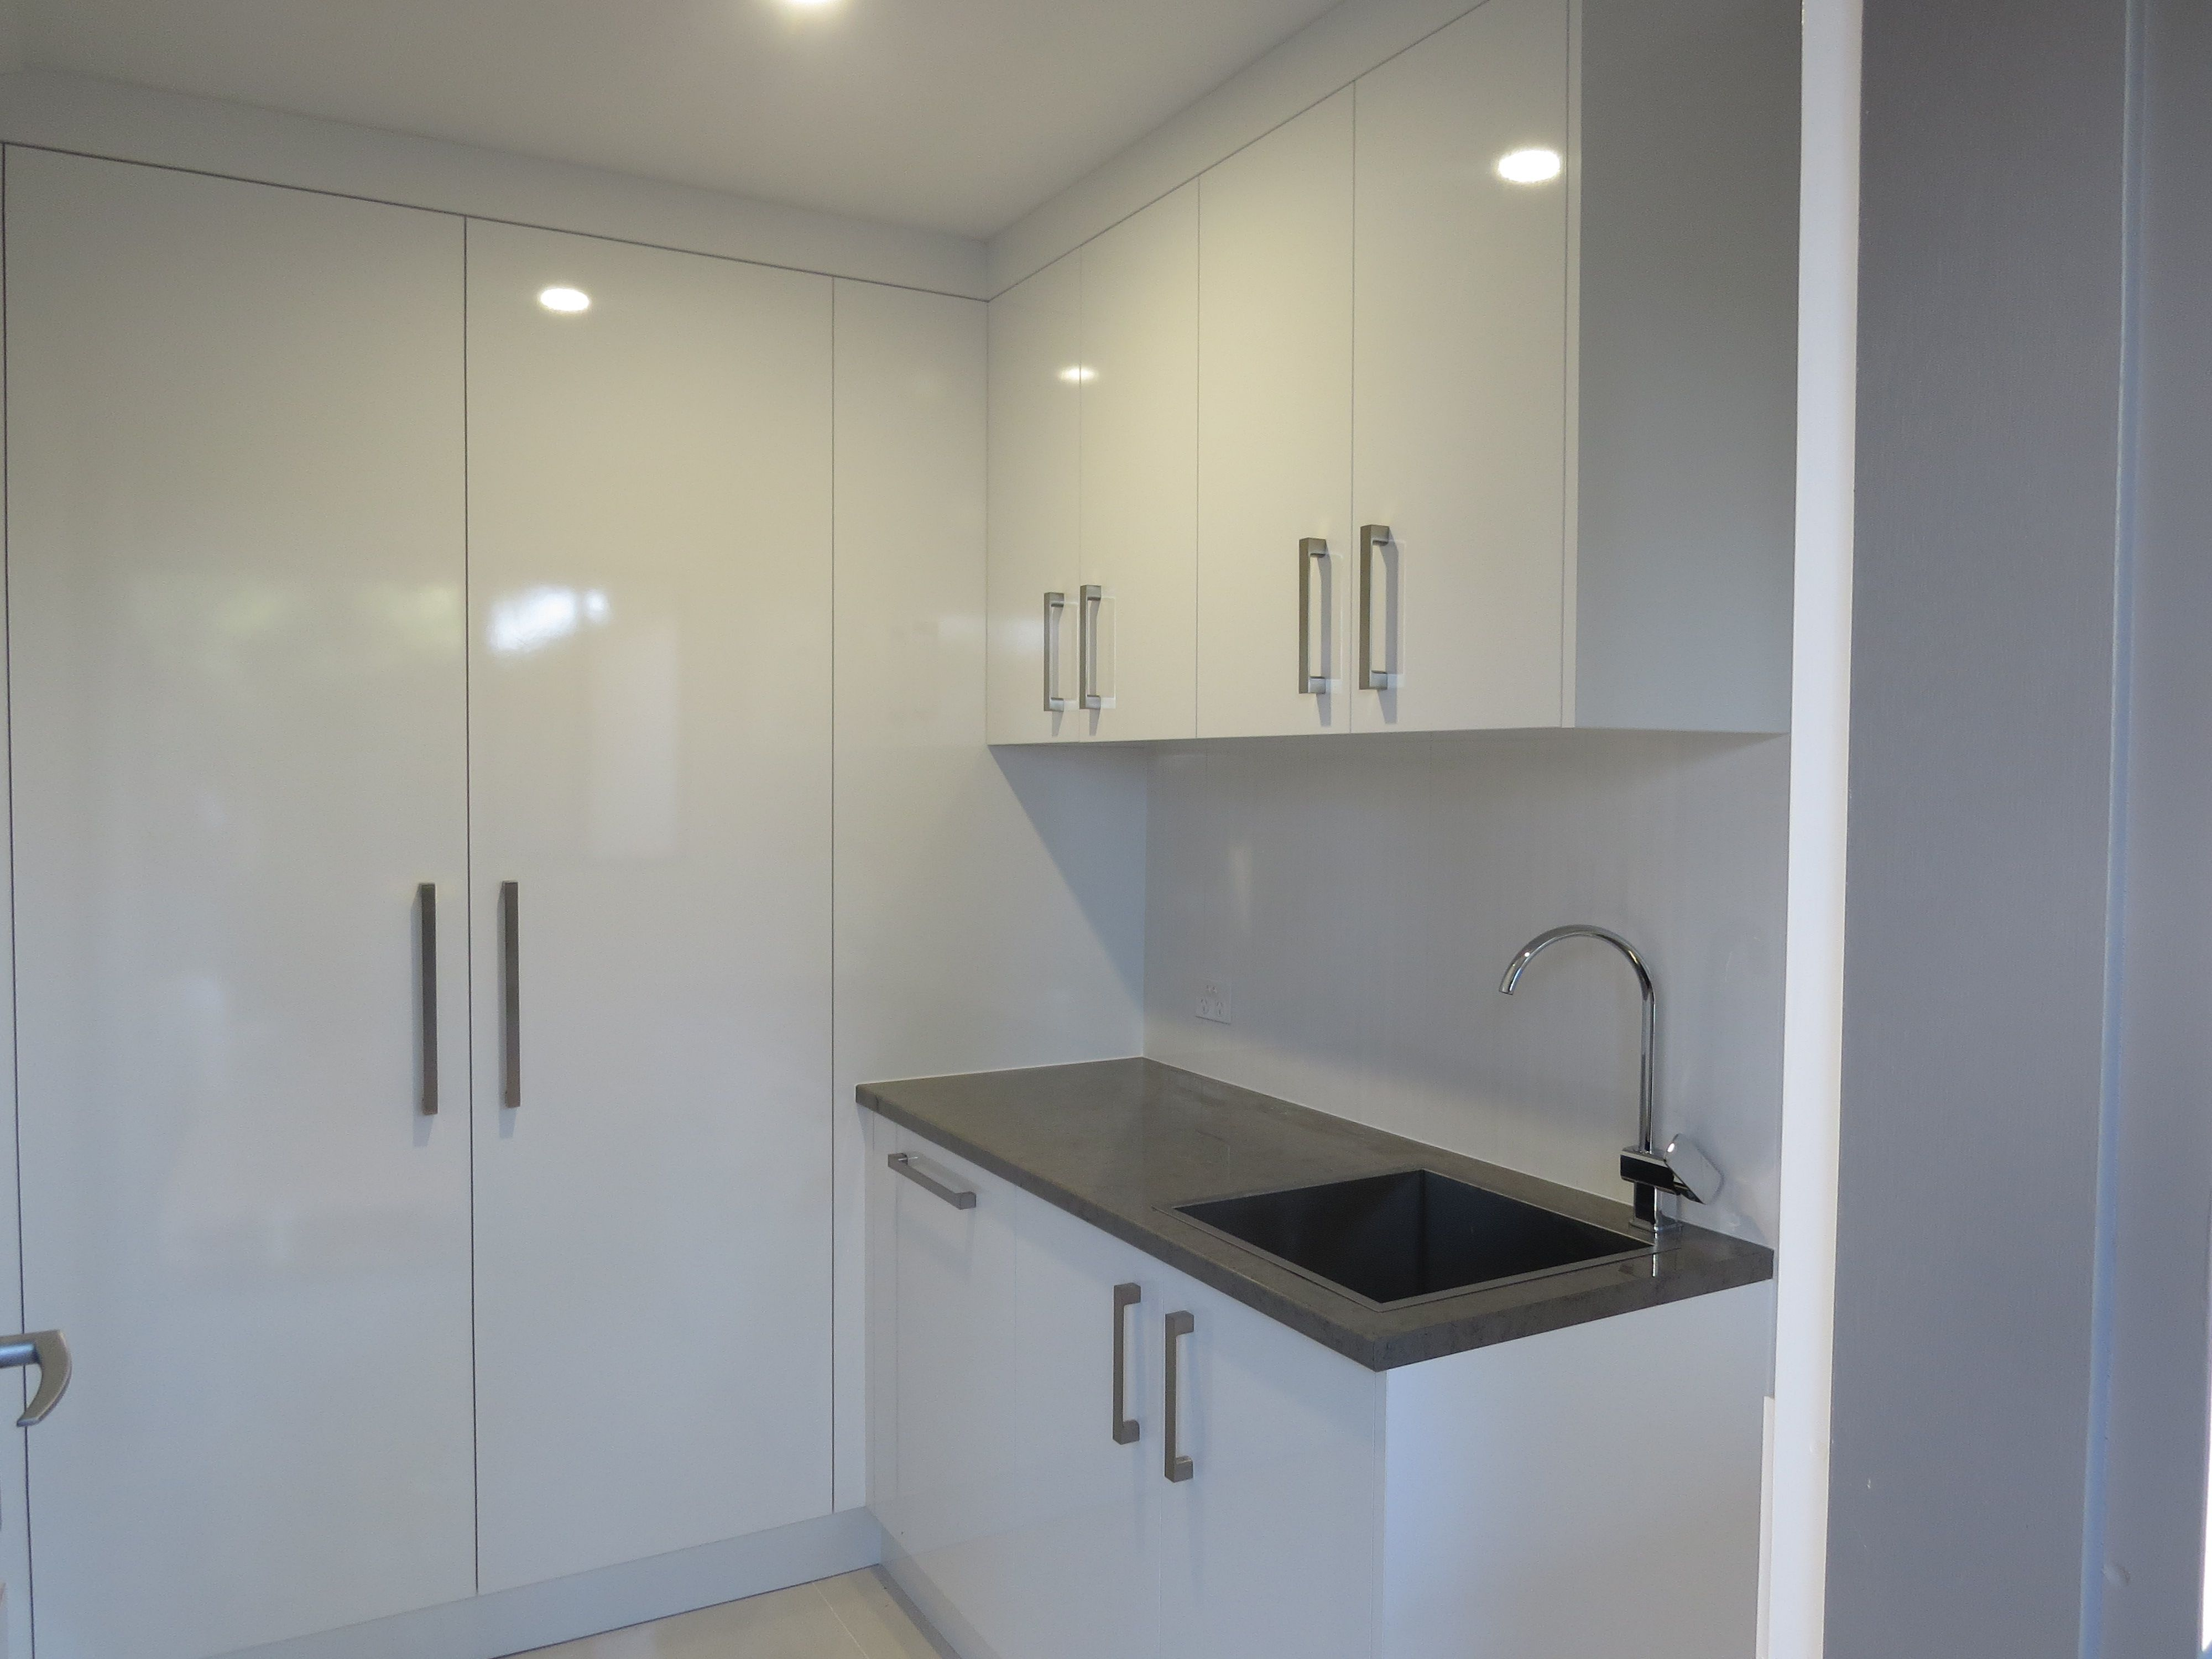 Laundry With Broom Cupboard, Storage Cupboards With Adj Shelves And